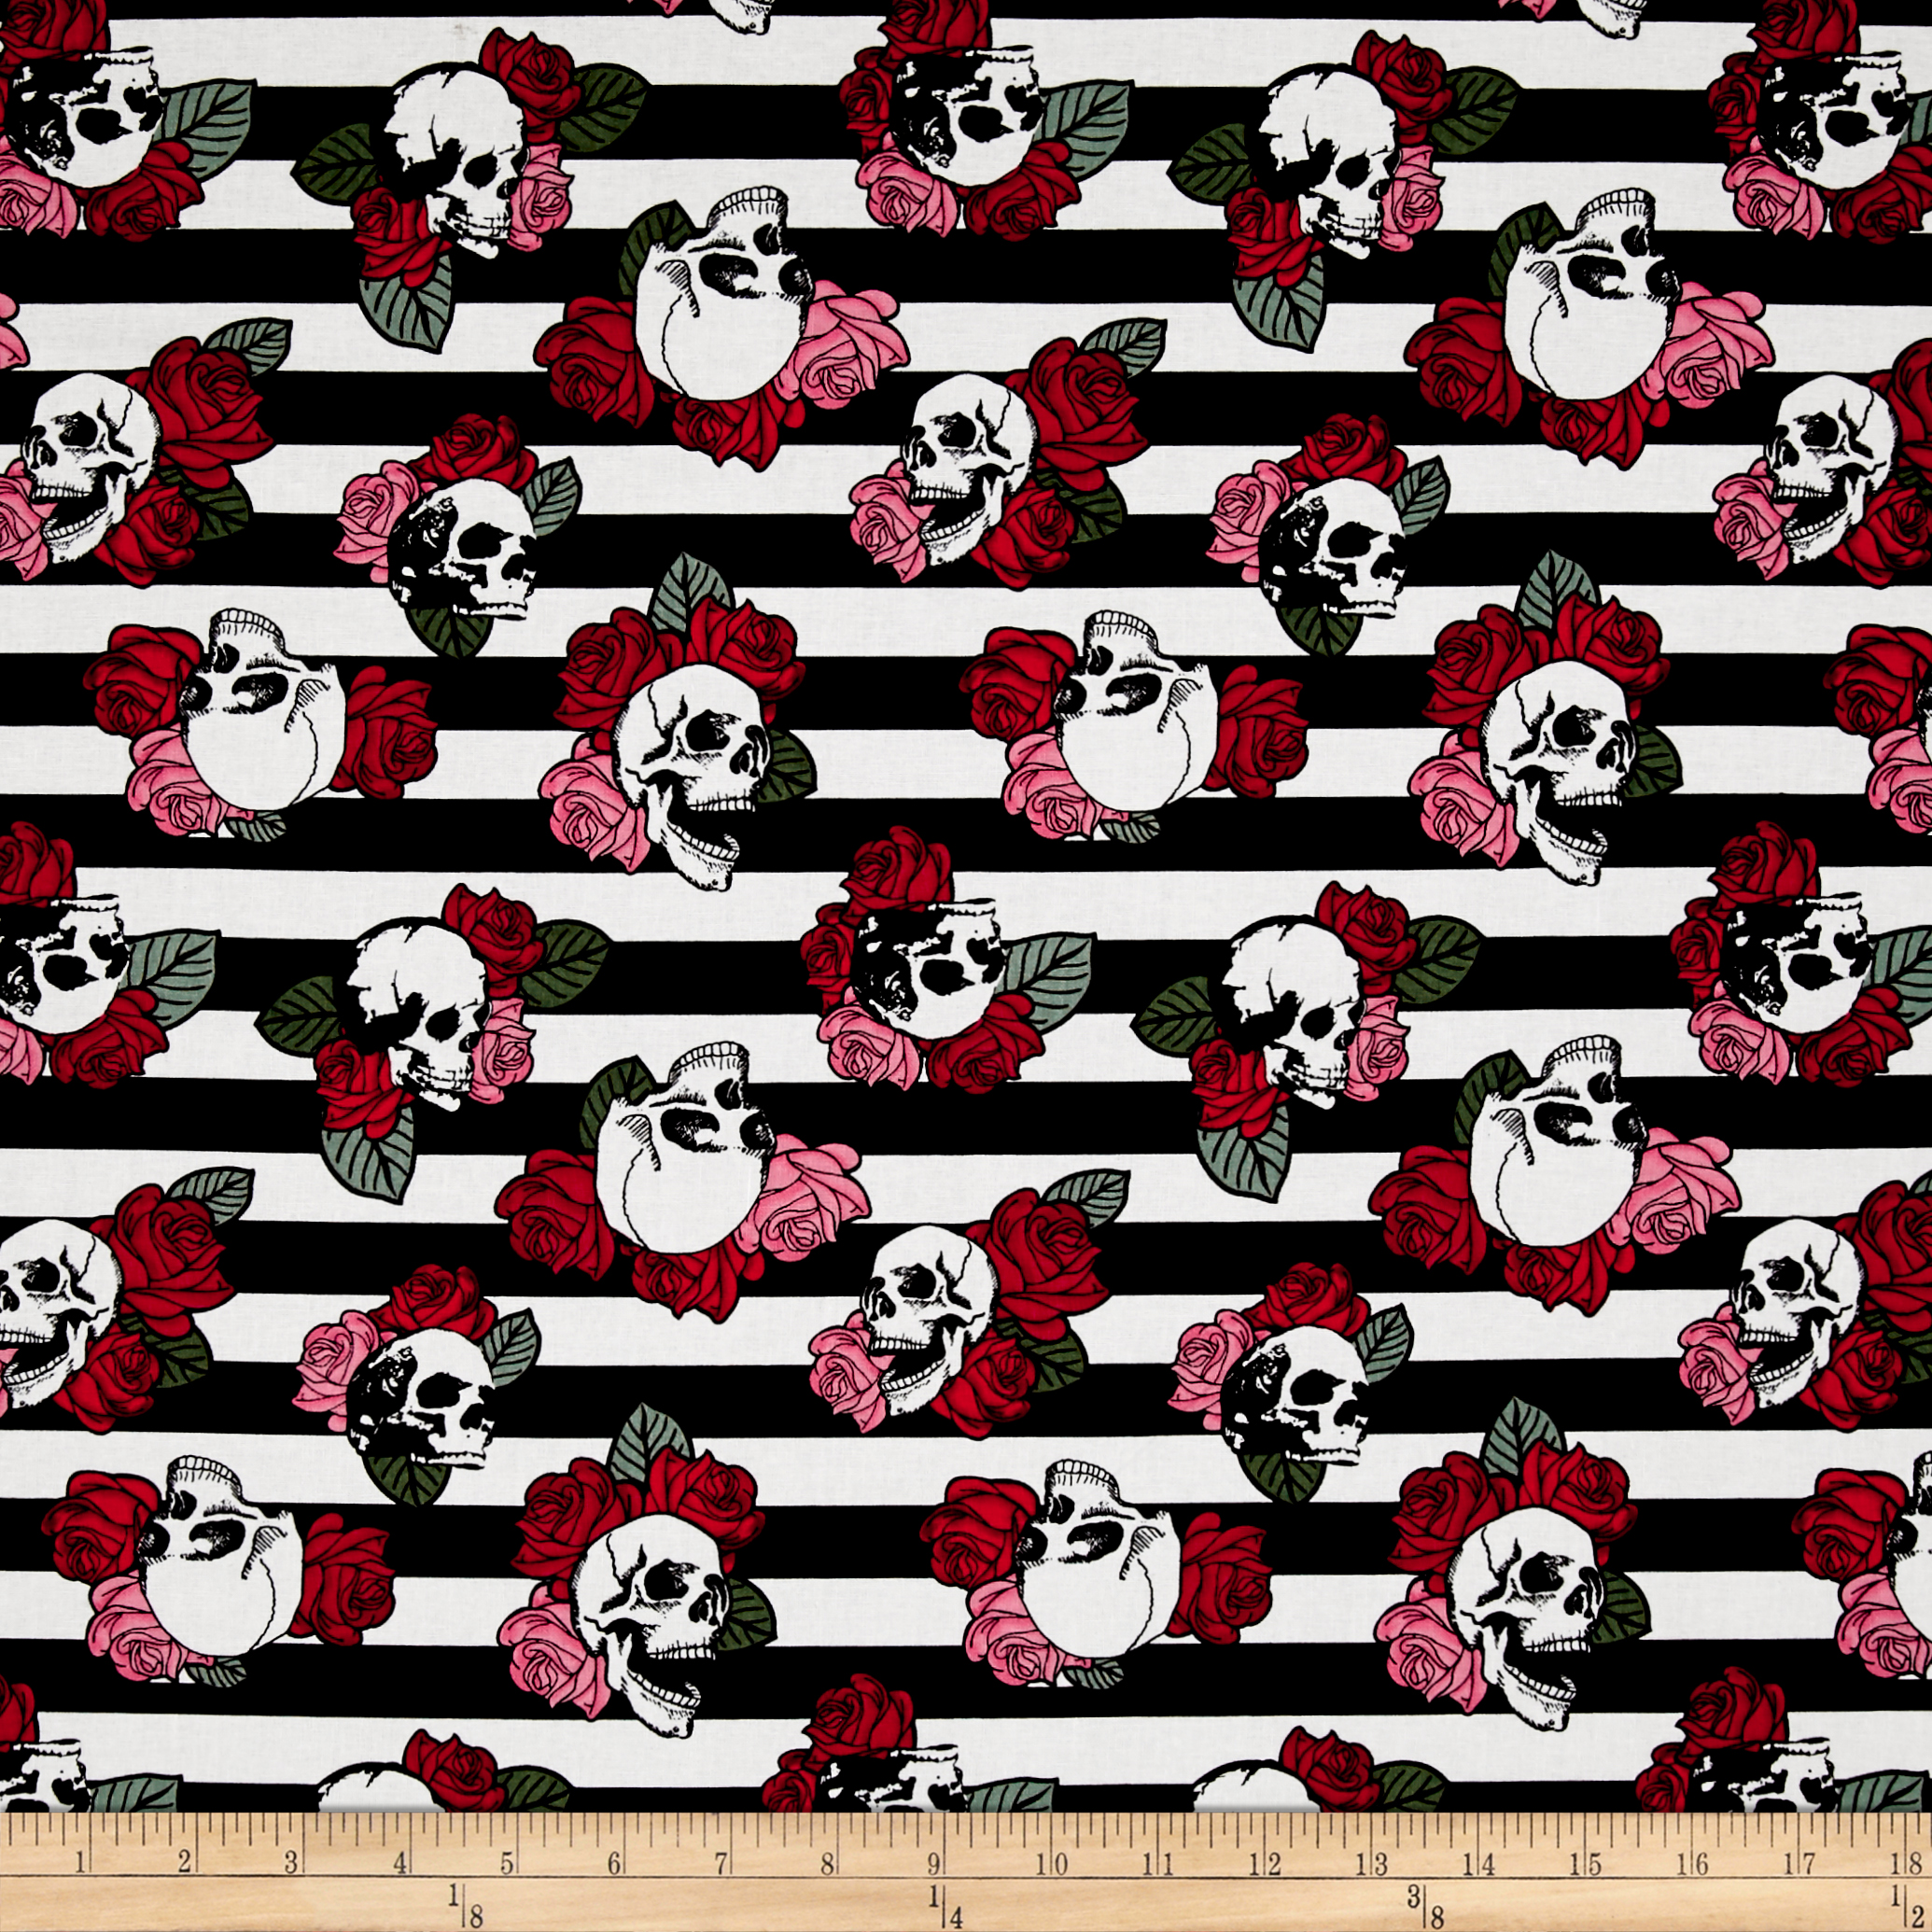 Punk Rock Punk Skulls and Roses Fabric by David in USA